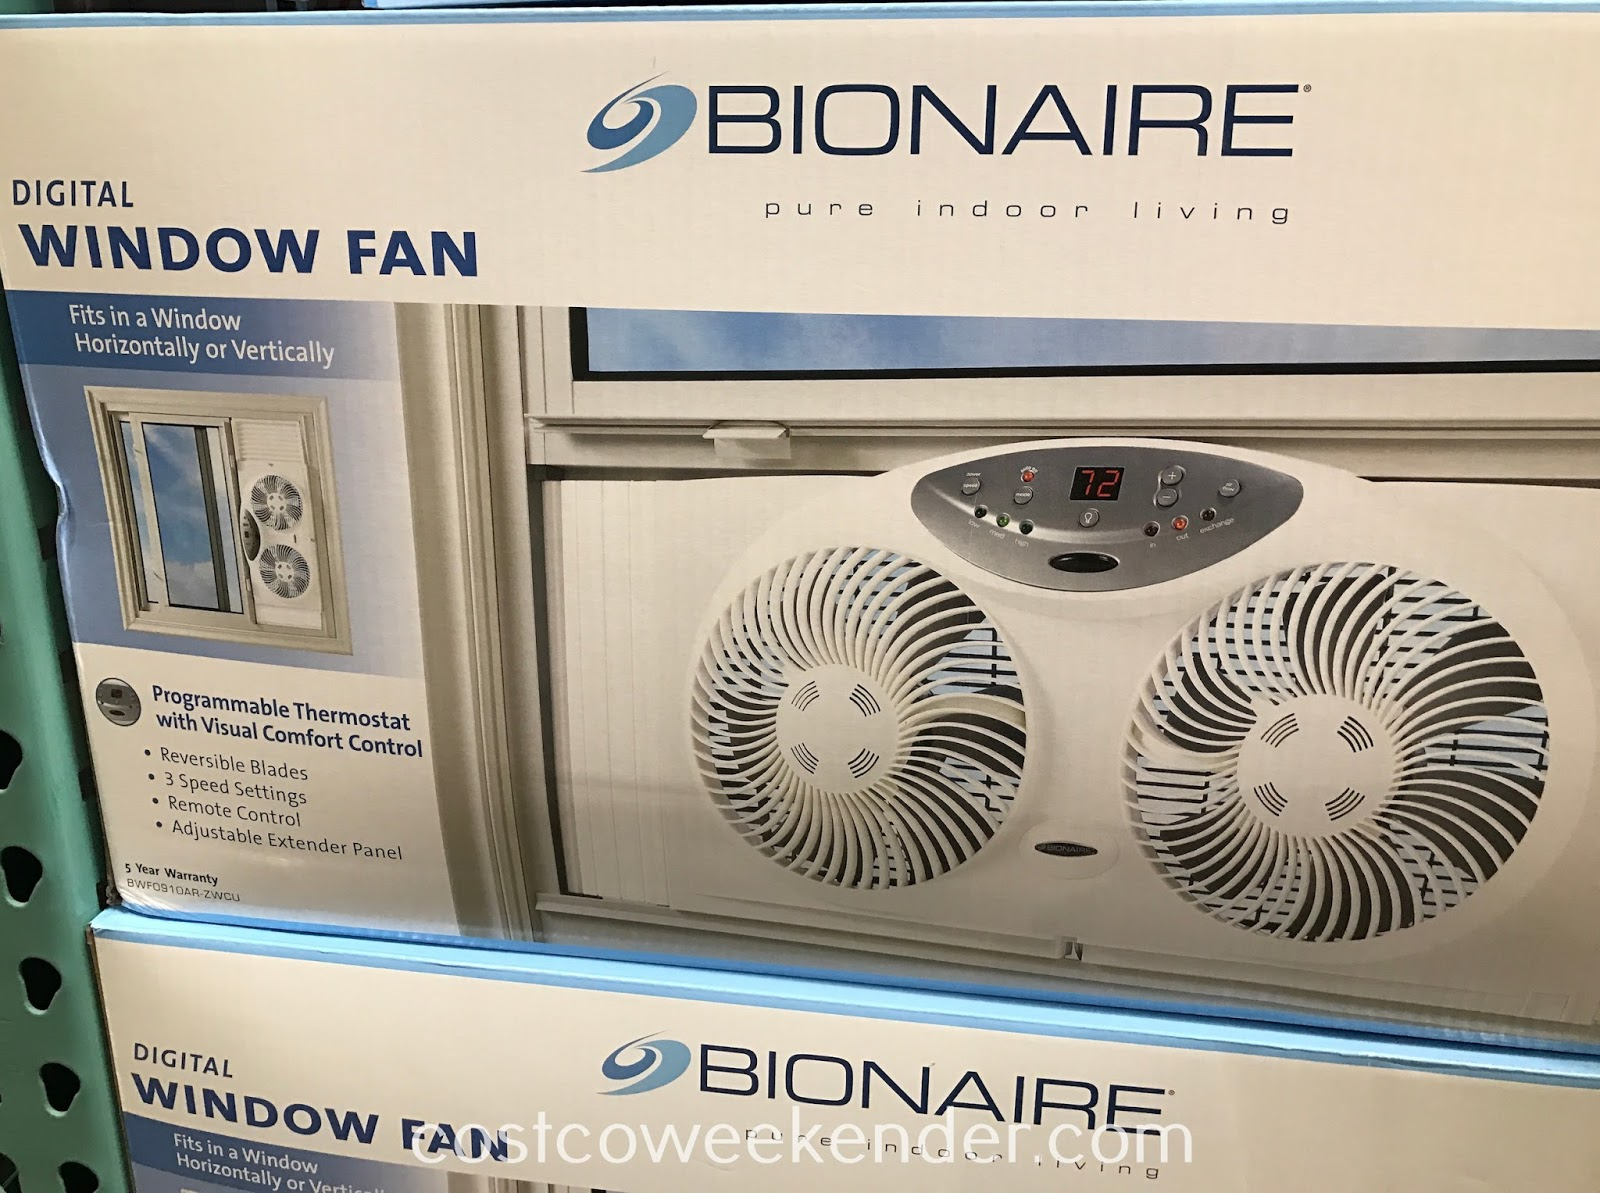 Prevent your home from being a hot box with the Bionaire Digital Twin Window Fan